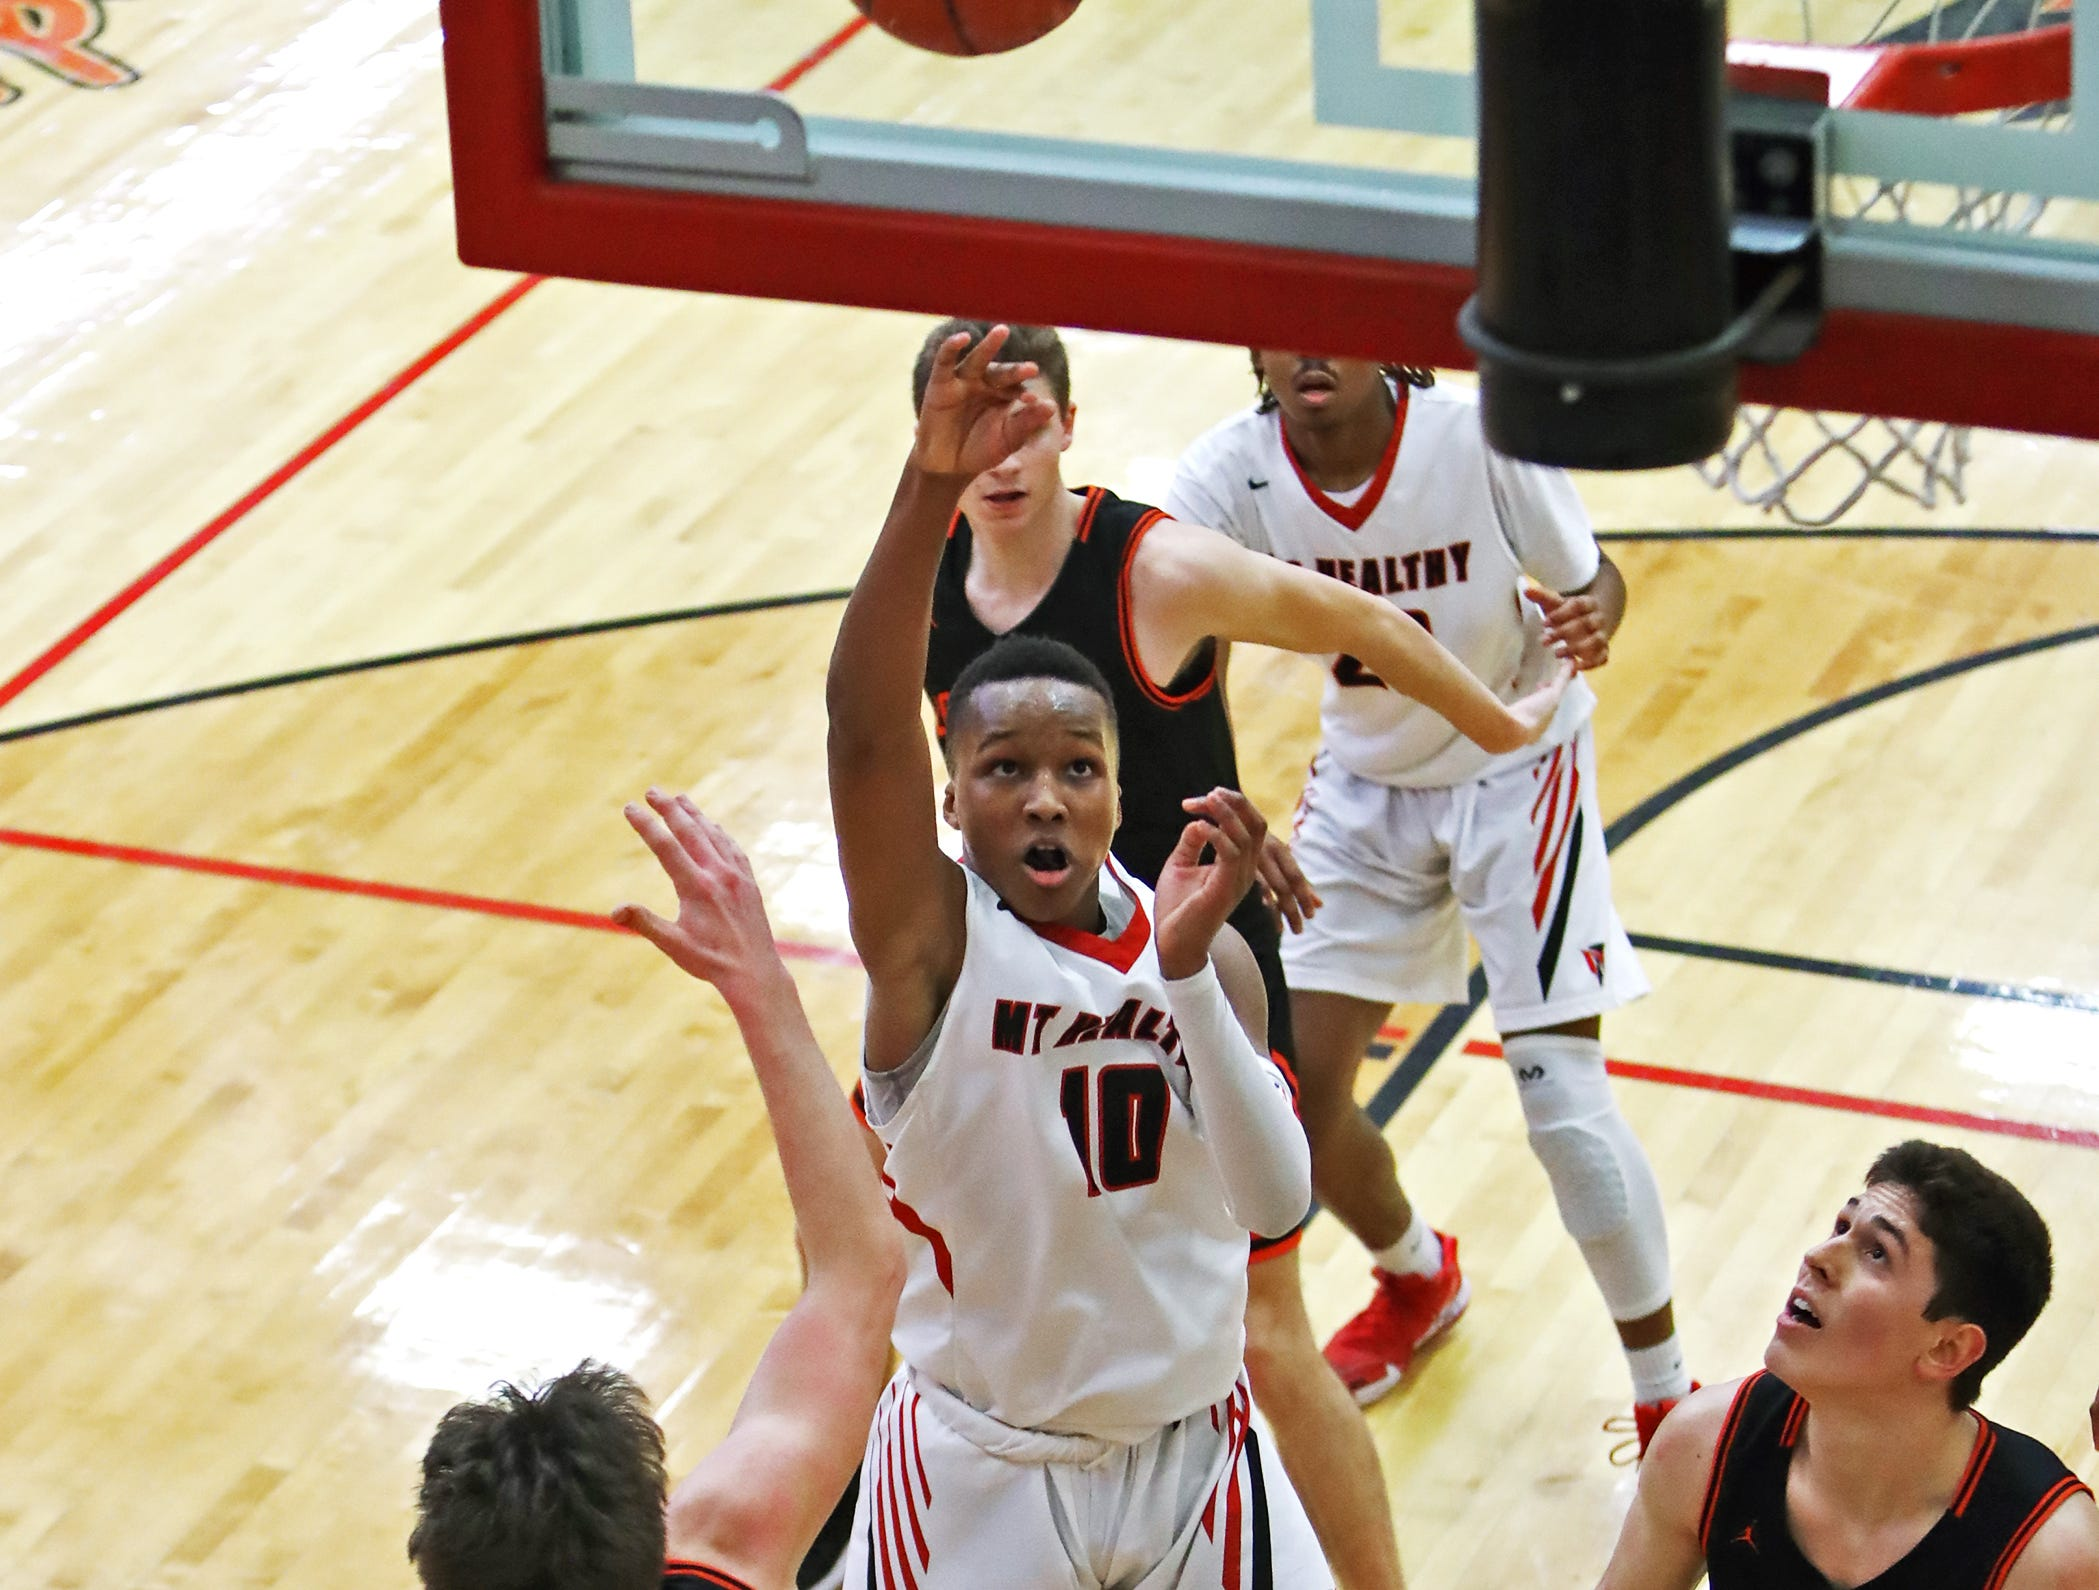 Mount Healthy guard Kollin Tolbert scores on this jump shot in the sectional playoffs at Lakota West High School Feb. 23, 2019. Mount Healthy defeated Loveland 62-57.